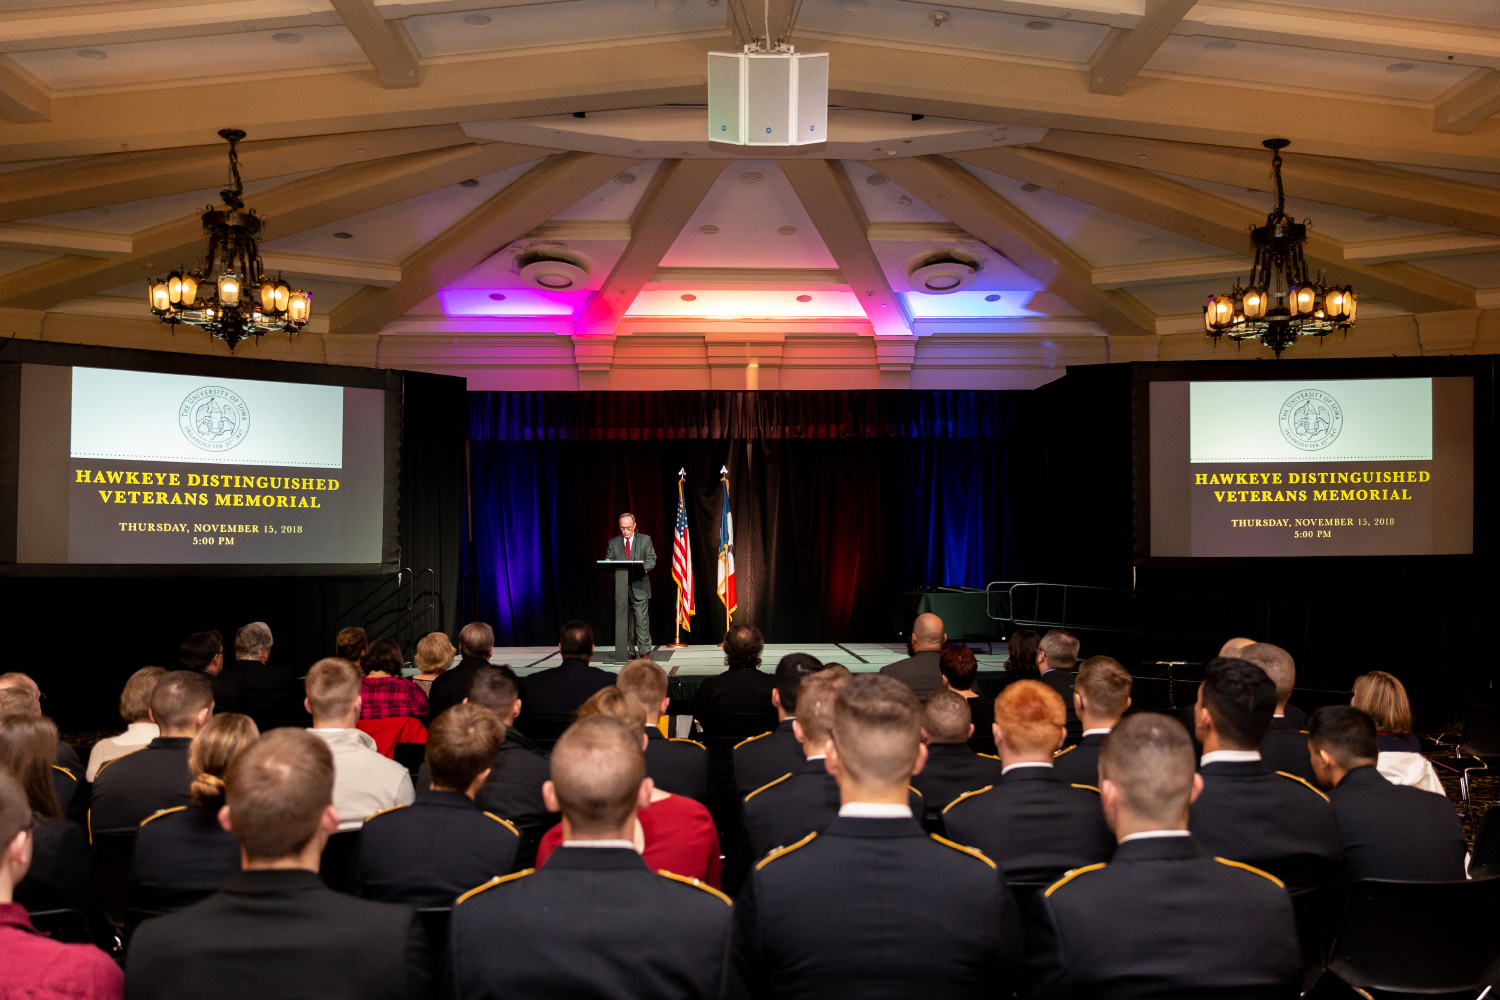 Maj.+Gen.+%28retired%29+Stewart+Wallace+addresses+the+crowd+at+the+Hawkeye+Distinguished+Veterans+Memorial+Awards+Ceremony+at+the+IMU+on+Thursday%2C+Nov.+15%2C+2018.+